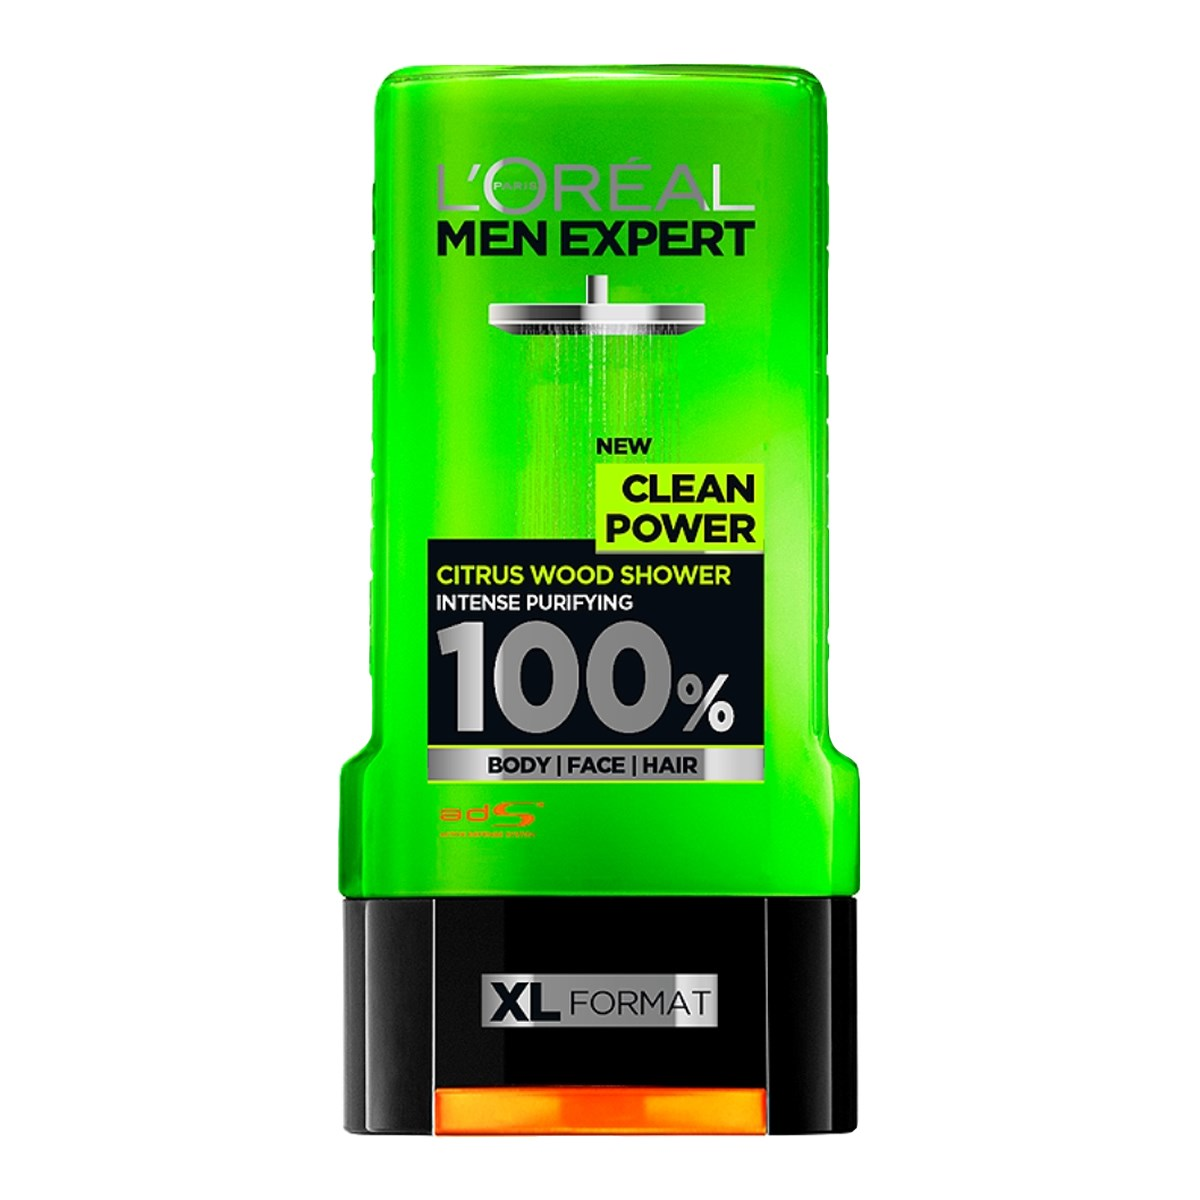 L'Oreal Paris Men Expert Clean Power Shower Gel